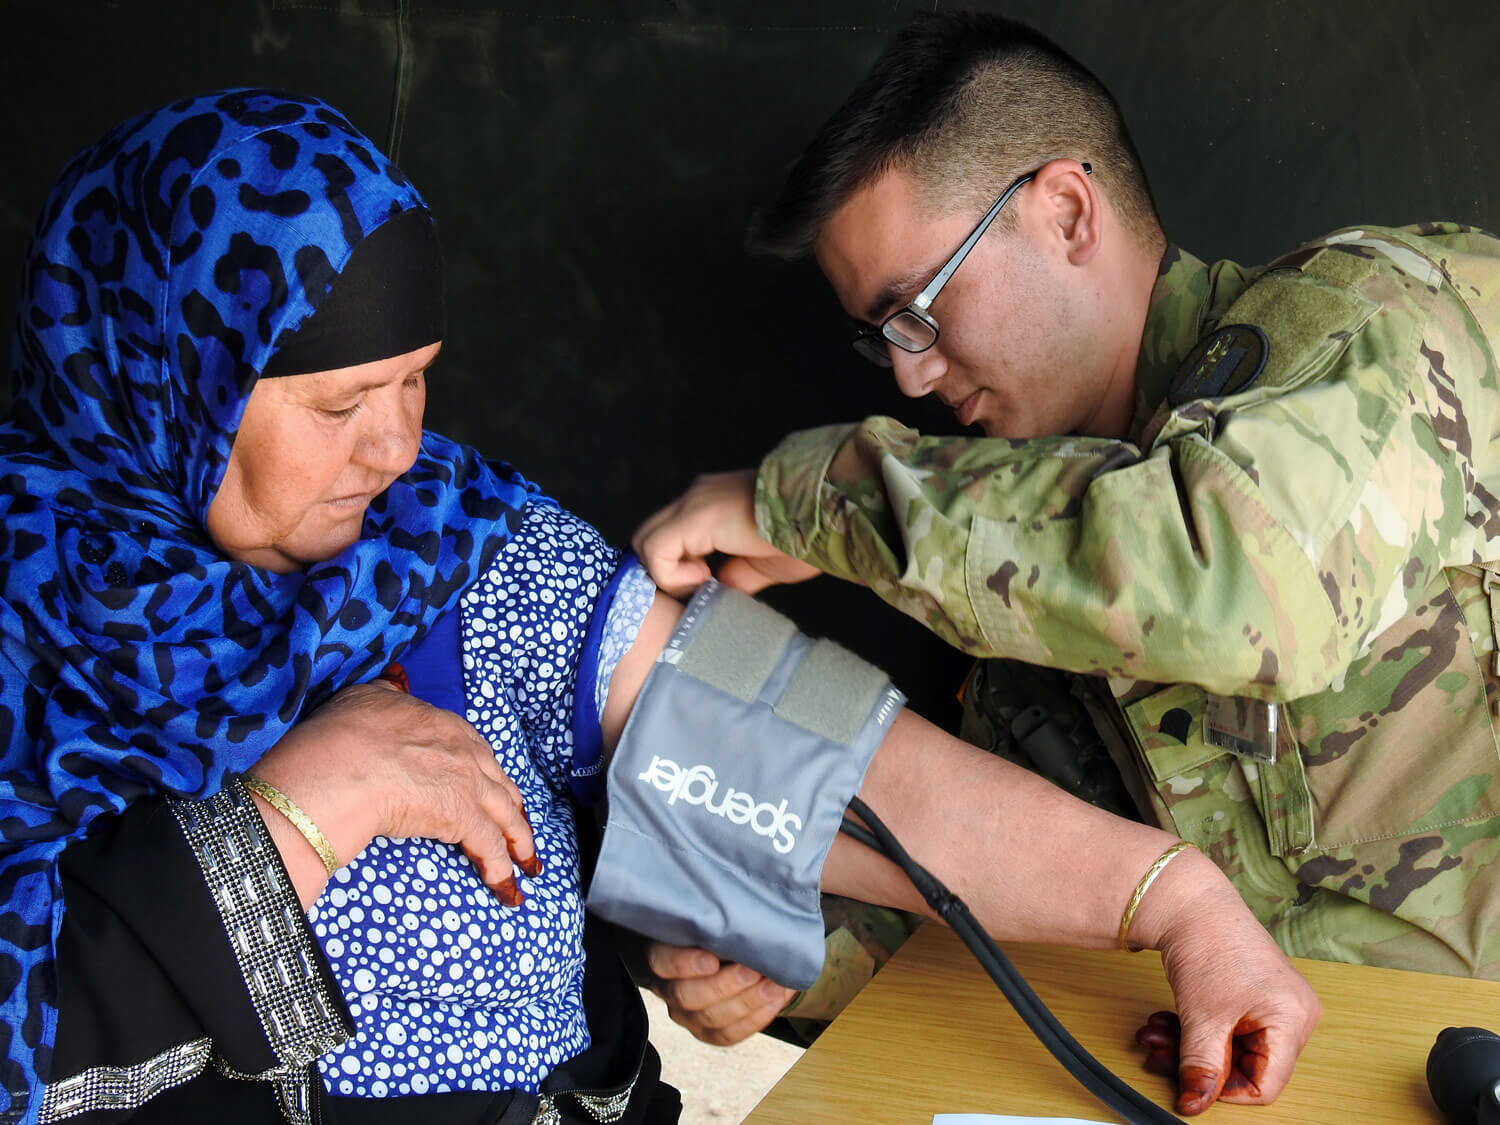 SPC Nathan Ro of the Utah Army National Guard's Medical Command checks the blood pressure of a Moroccan citizen during Exercise African Lion 2018, April 15–April 28. The overseas deployment training was a joint initiative between the armed forces of the United States, Morocco, Tunisia, Canada and six European nations. The annually scheduled exercise involves various types of training and maneuvers held throughout Morocco. The Utah Army National Guard was responsible for the exercise's Humanitarian and Civic Assistance event. Utah Army National Guard photo by MAJ Samantha Madsen